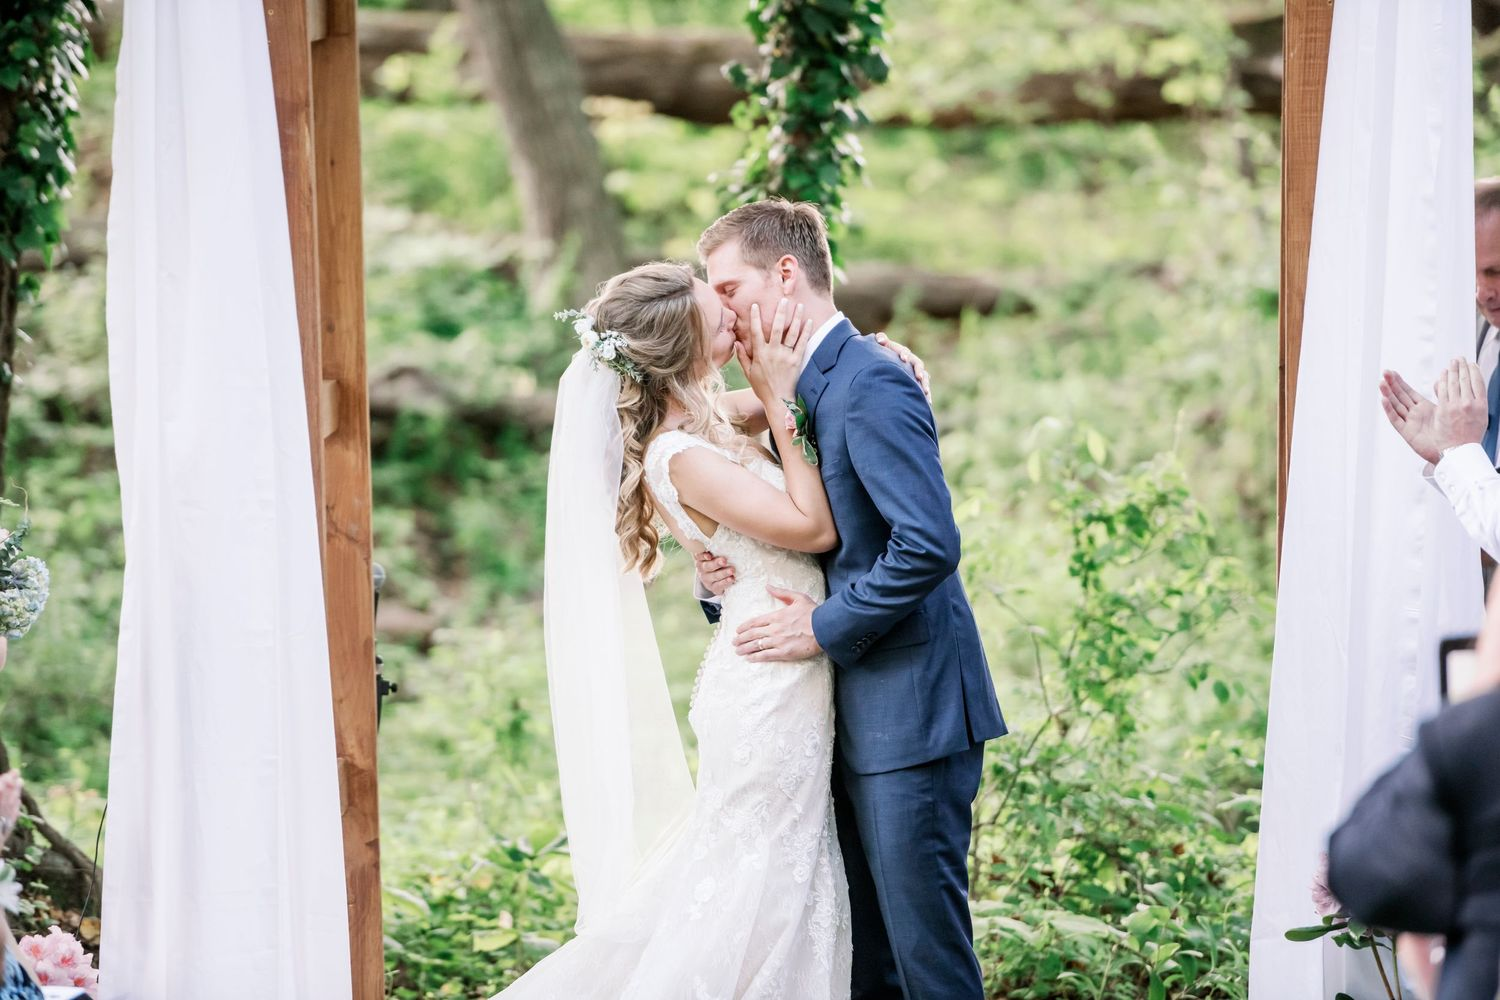 bride and groom's first kiss during a backyard farm wedding in woods